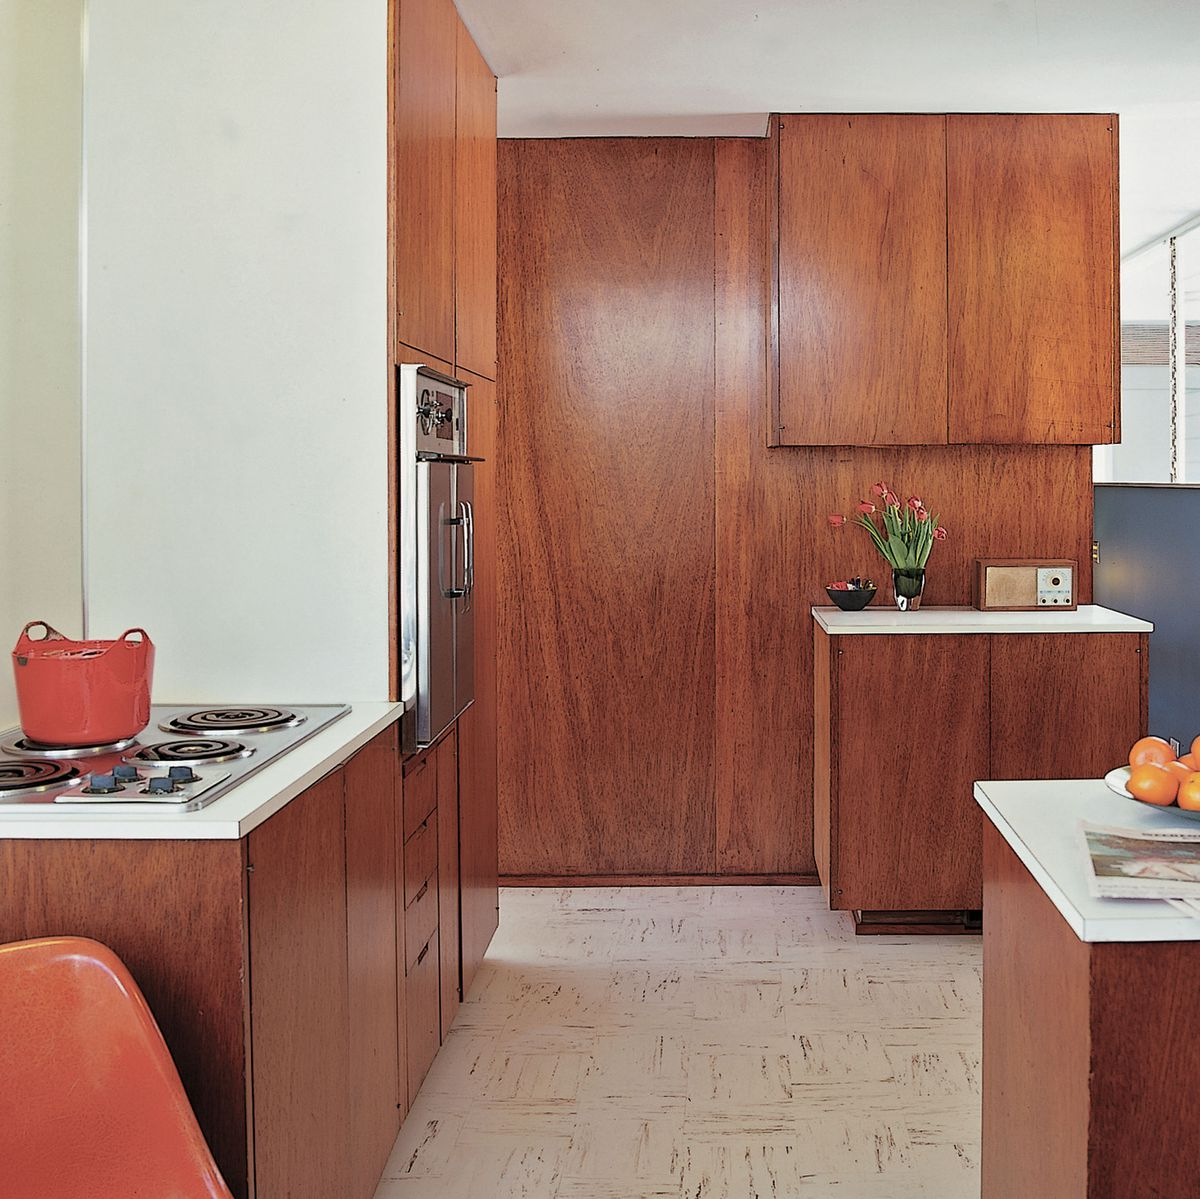 A room with dark wood cabinets and white countertops. An electric stove can be seen on the left